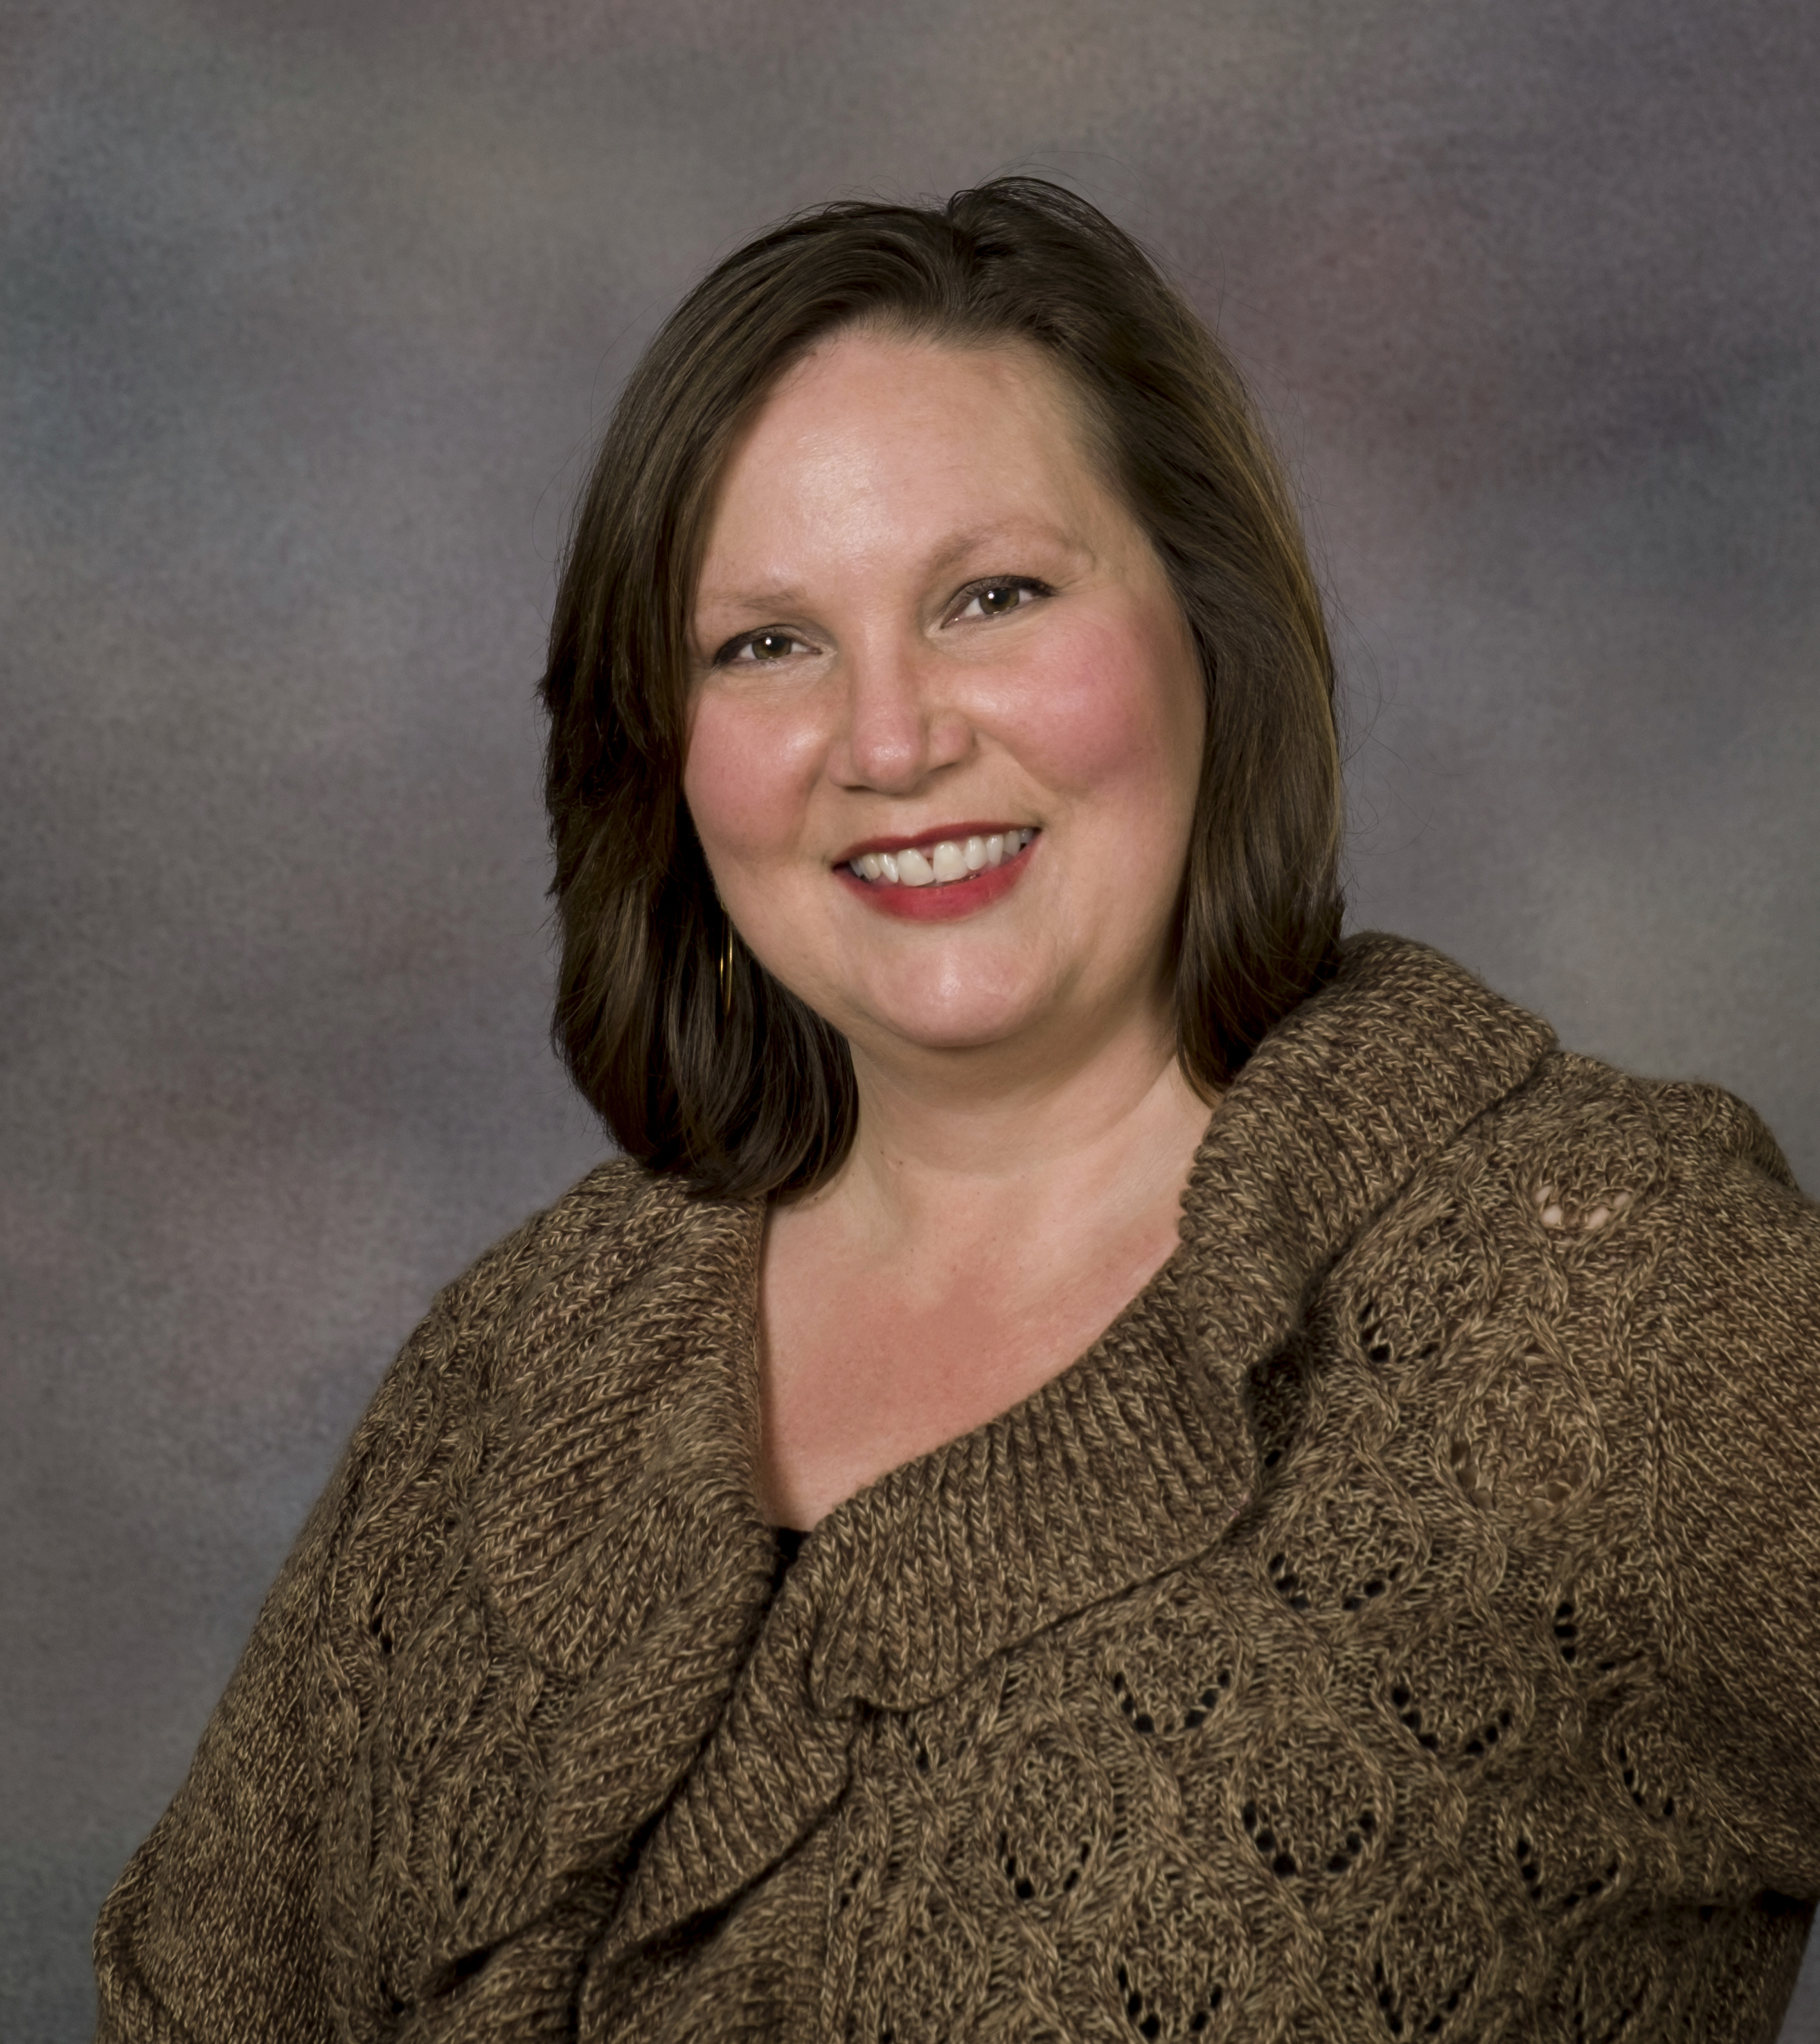 Terri Swenson, Instructional Designer